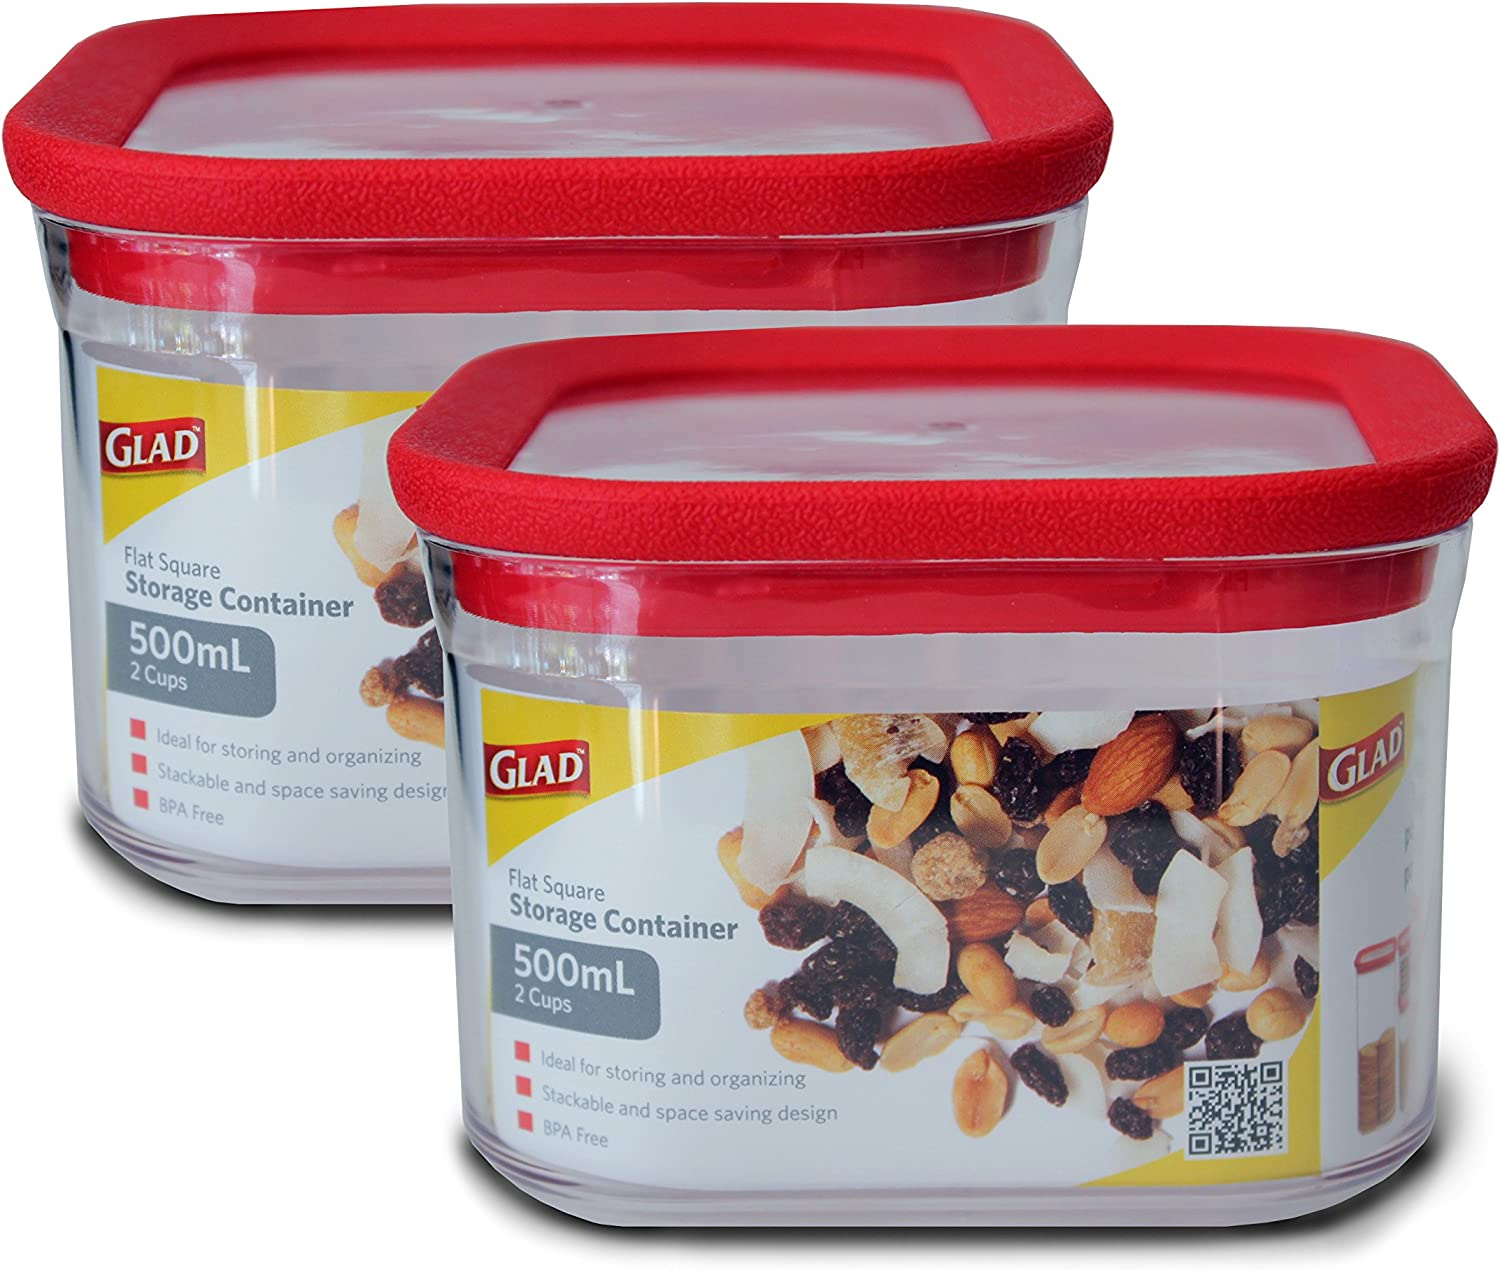 Glad Dry Food Storage Container, 0.5 Liter (2 Cups), Flat Square, Pack of 2